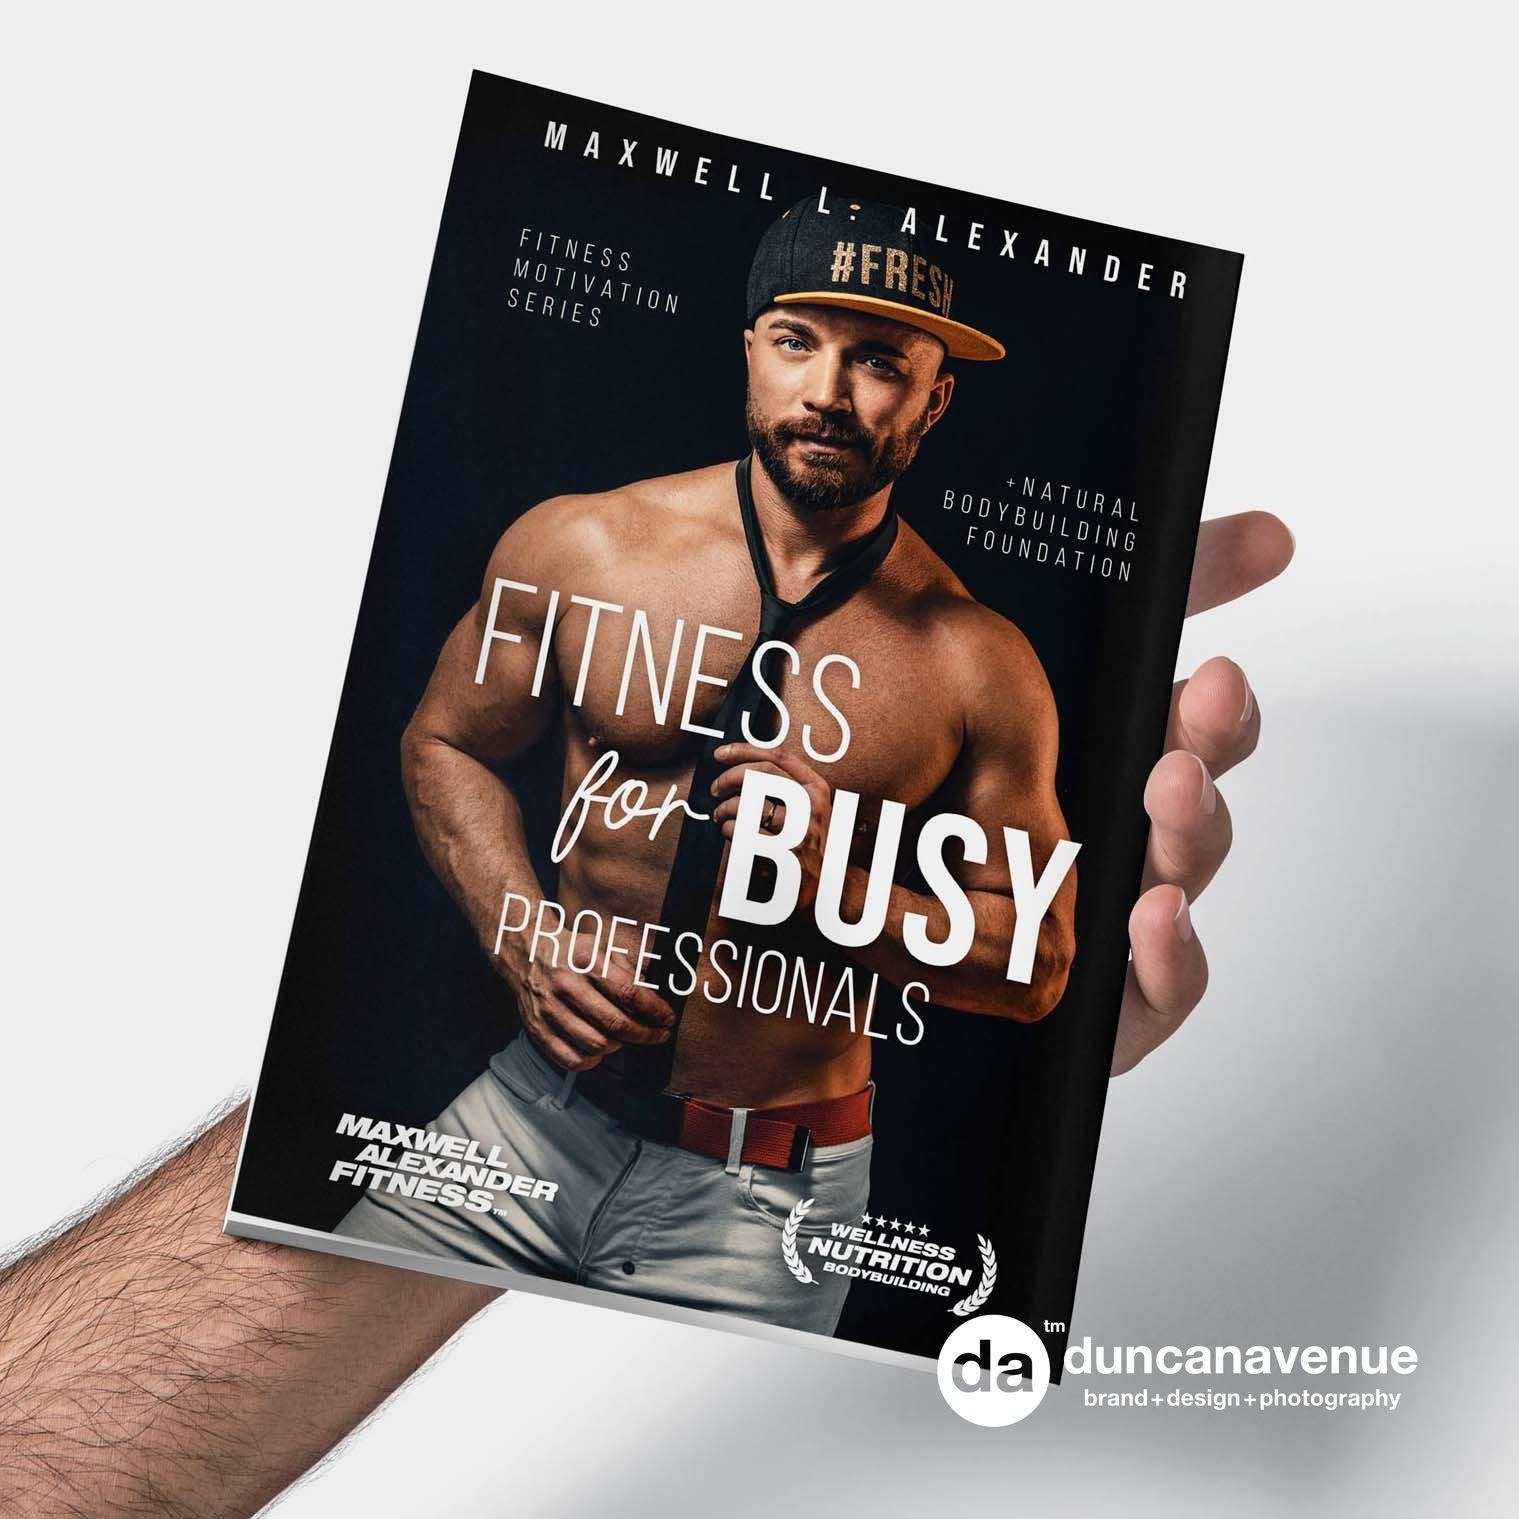 Fitness for Busy Professionals – New Fitness Motivation Book by Maxwell Alexander